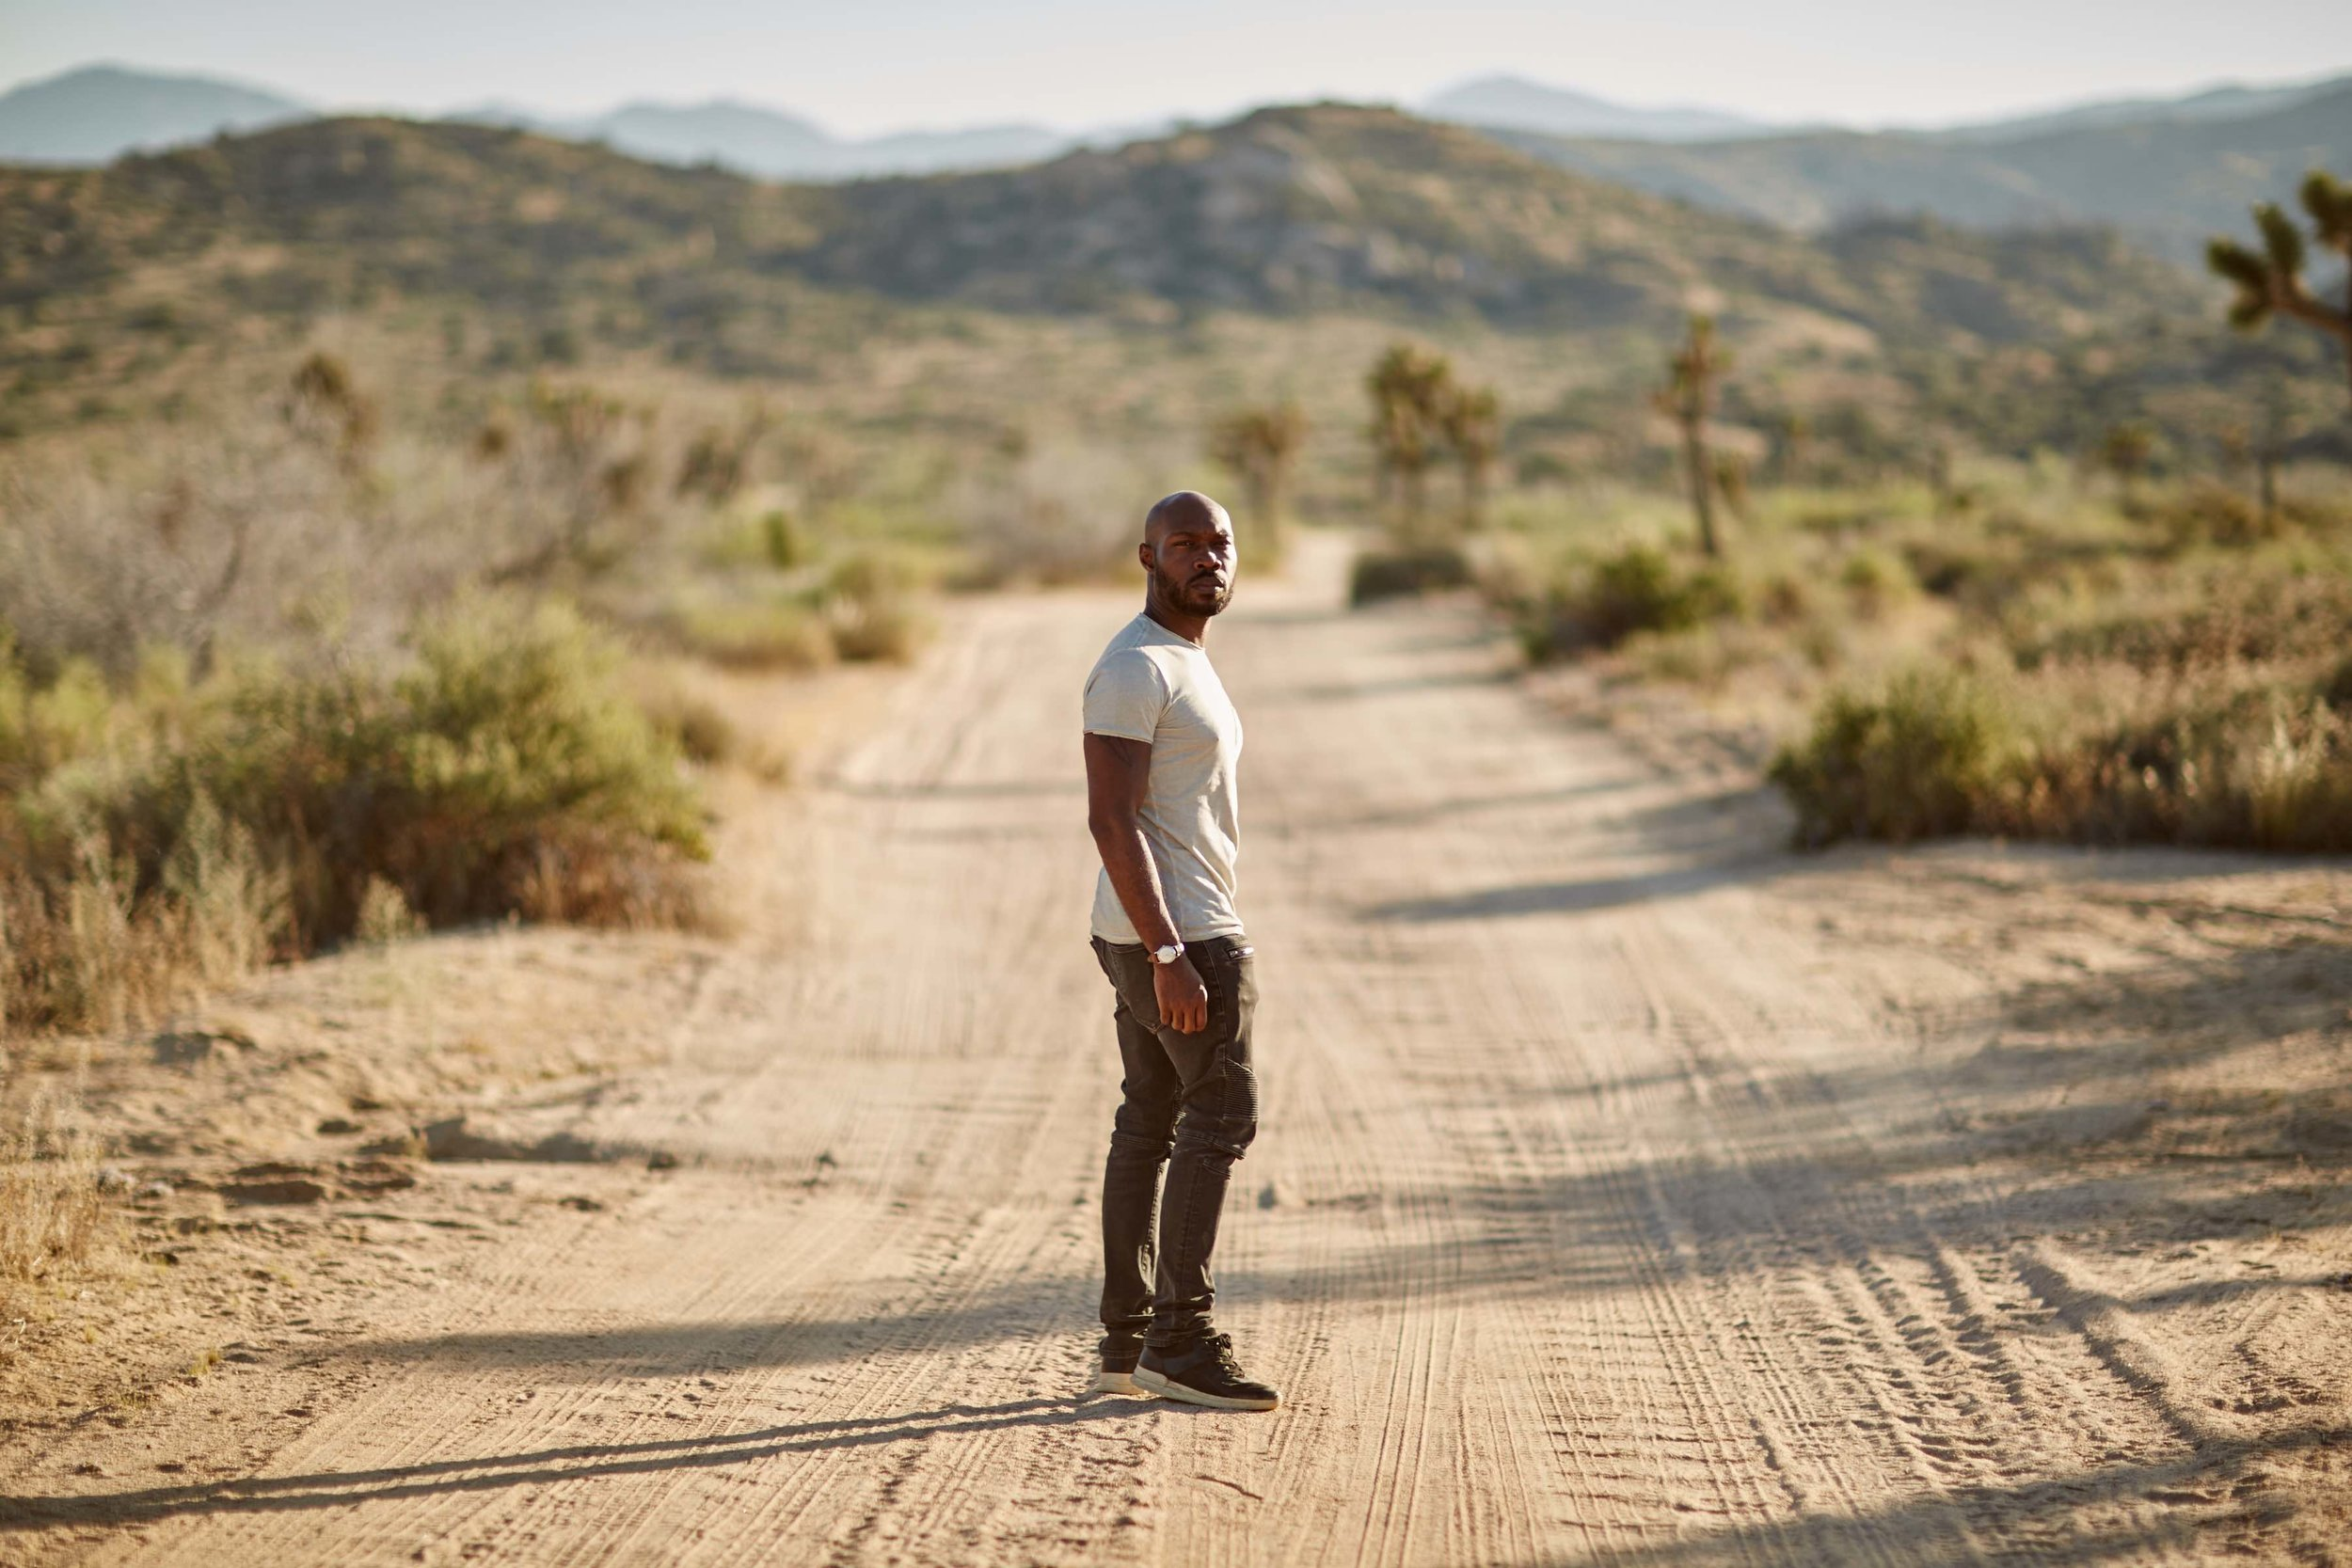 CJ-Johnson-Joshua Tree-cjjohnsonjr.jpg